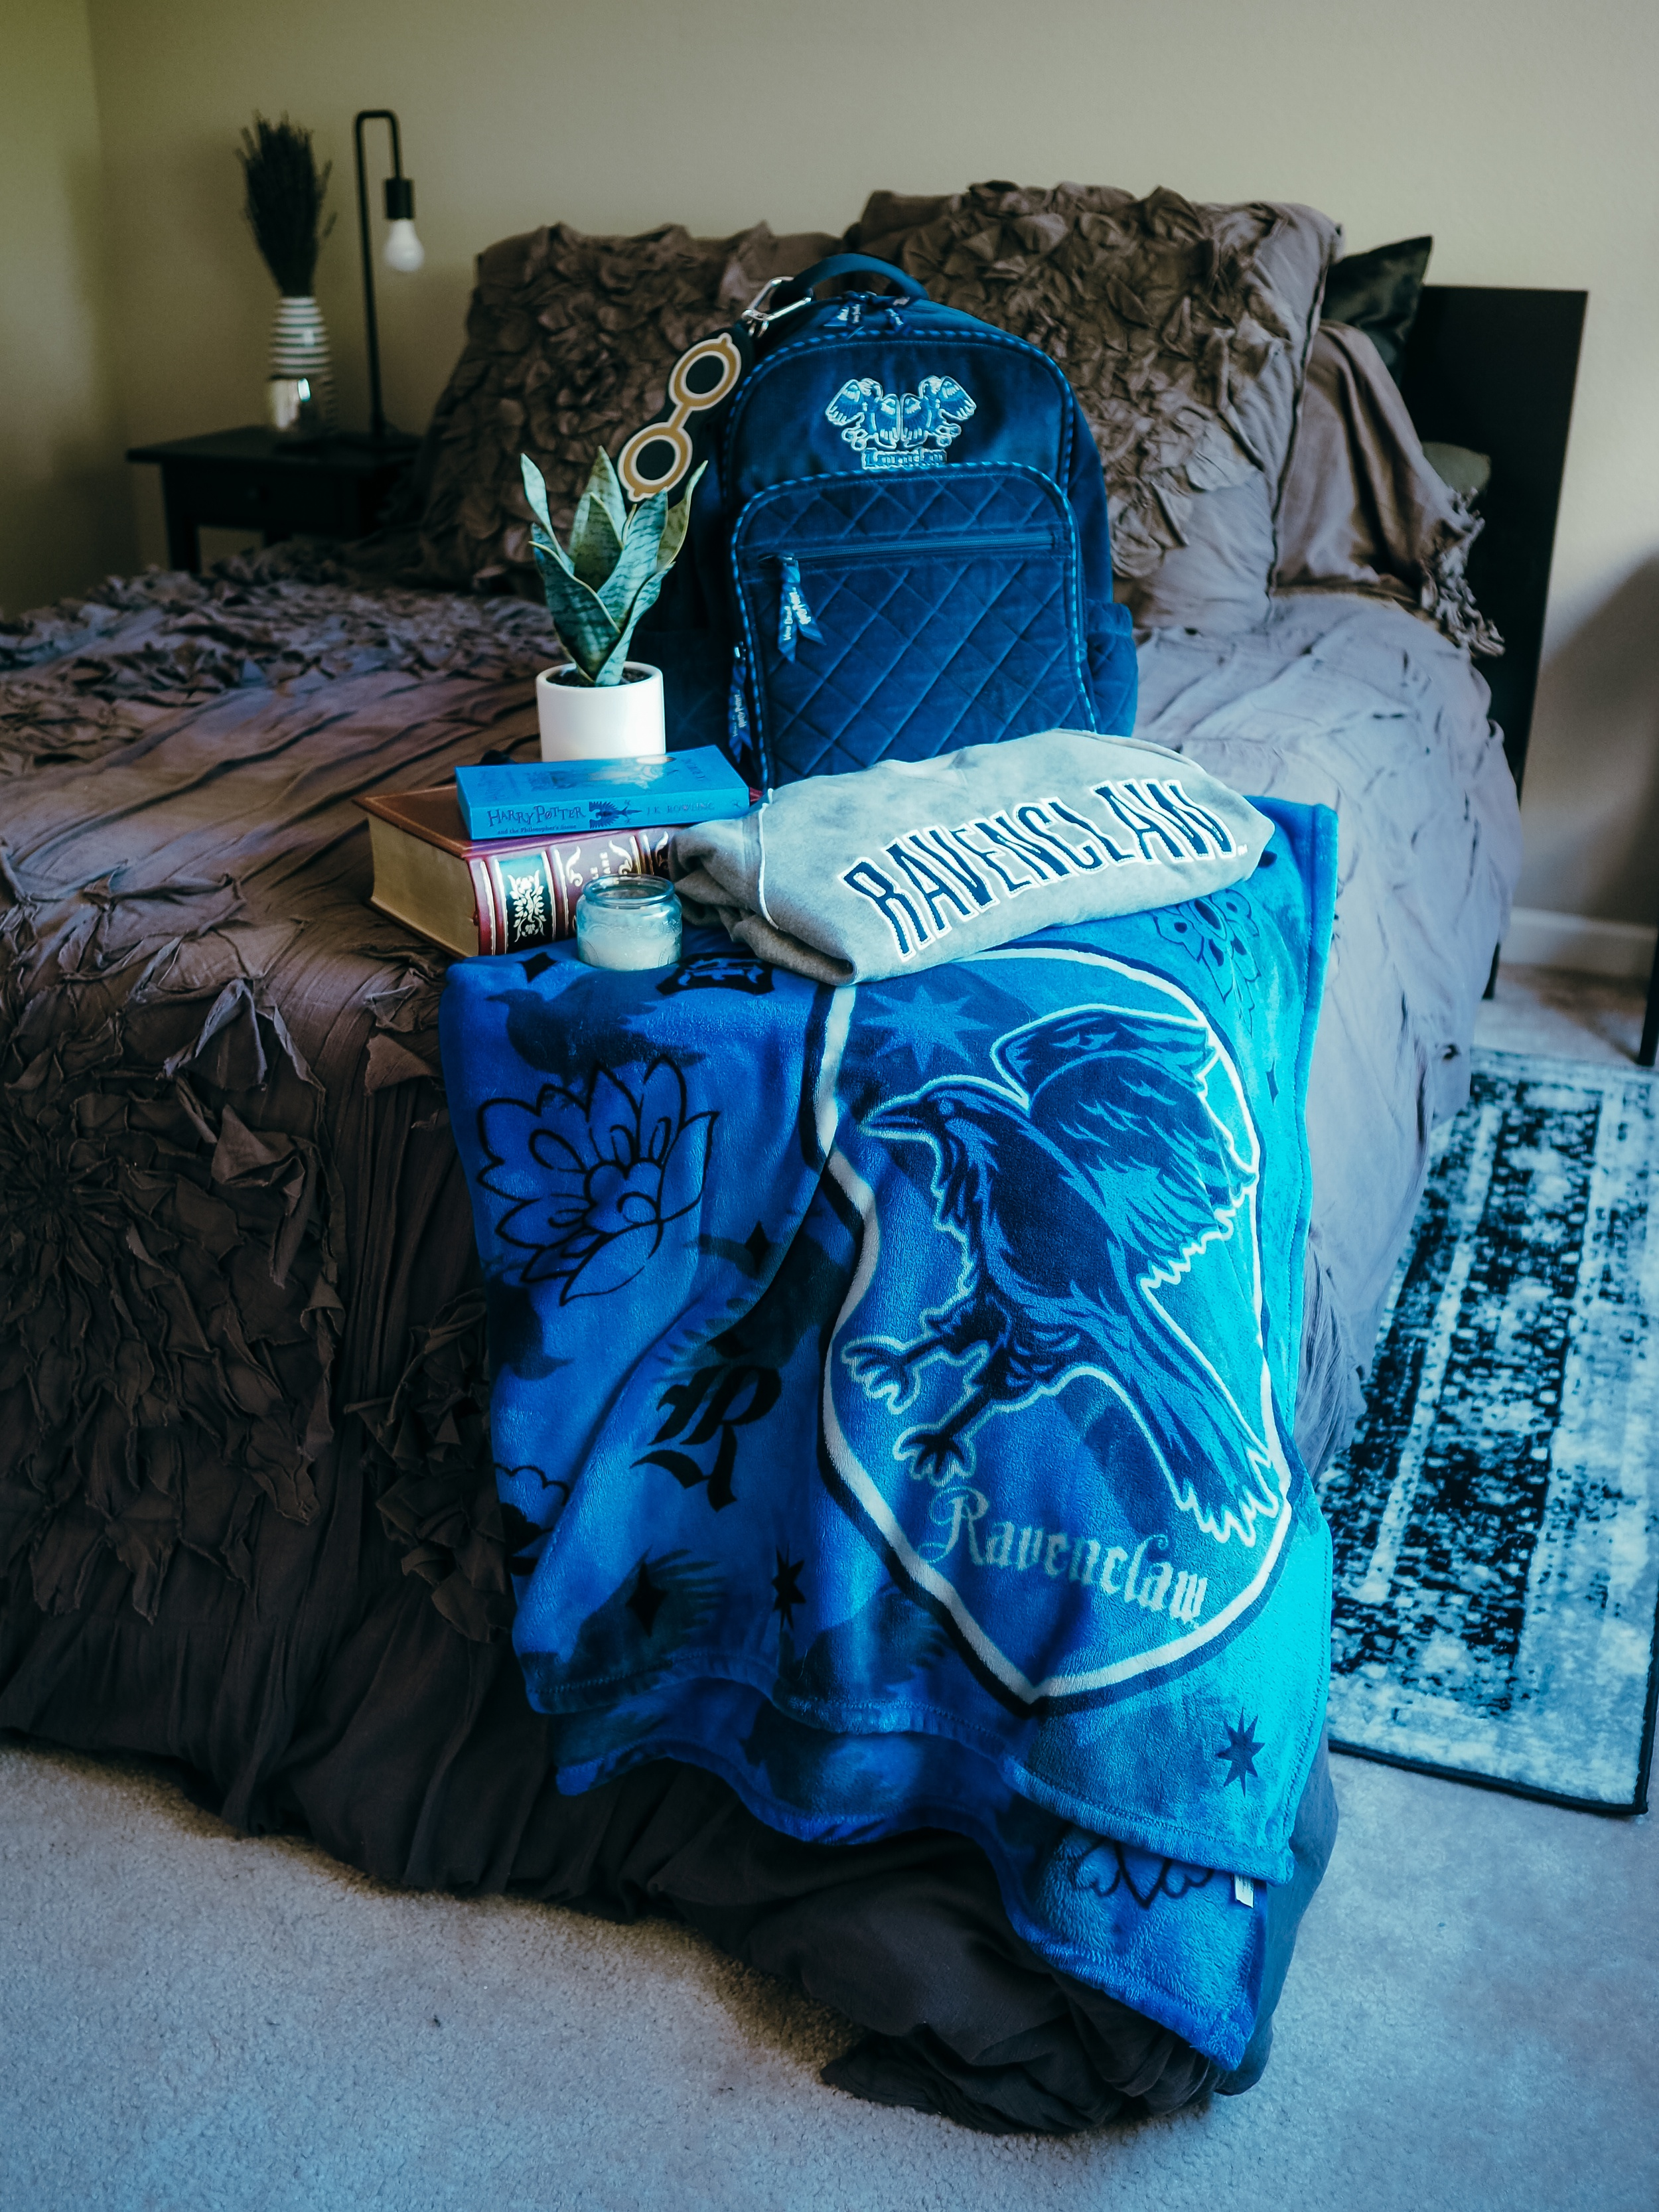 Ravenclaw aesthetic, but make it chic. Find out how to add some Ravenclaw aesthetic to your home, wardrobe, and life in this magical guide.